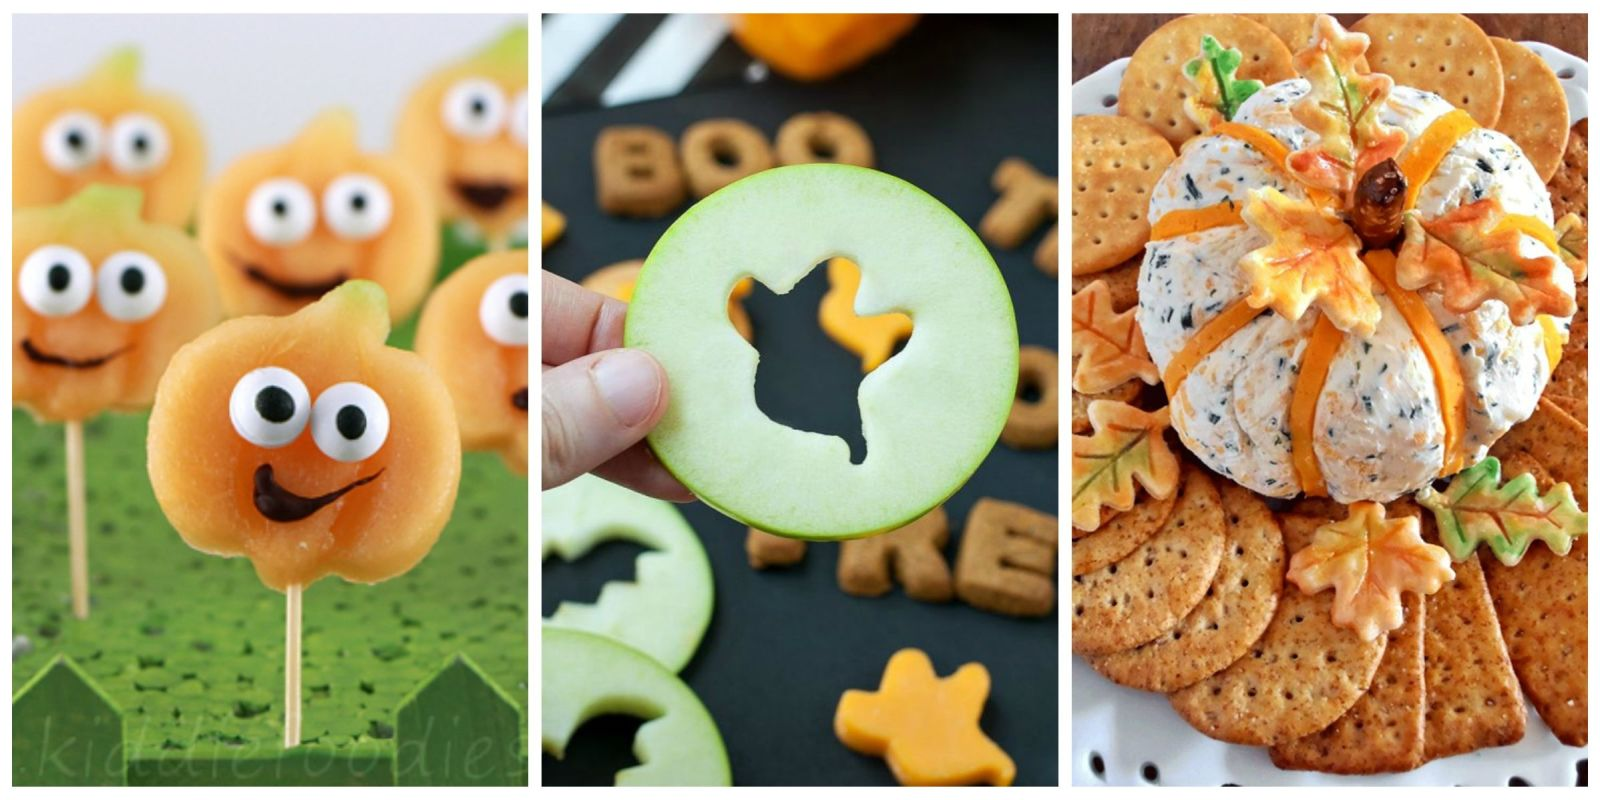 20 Wickedly Good Appetizers To Get Your Halloween Party